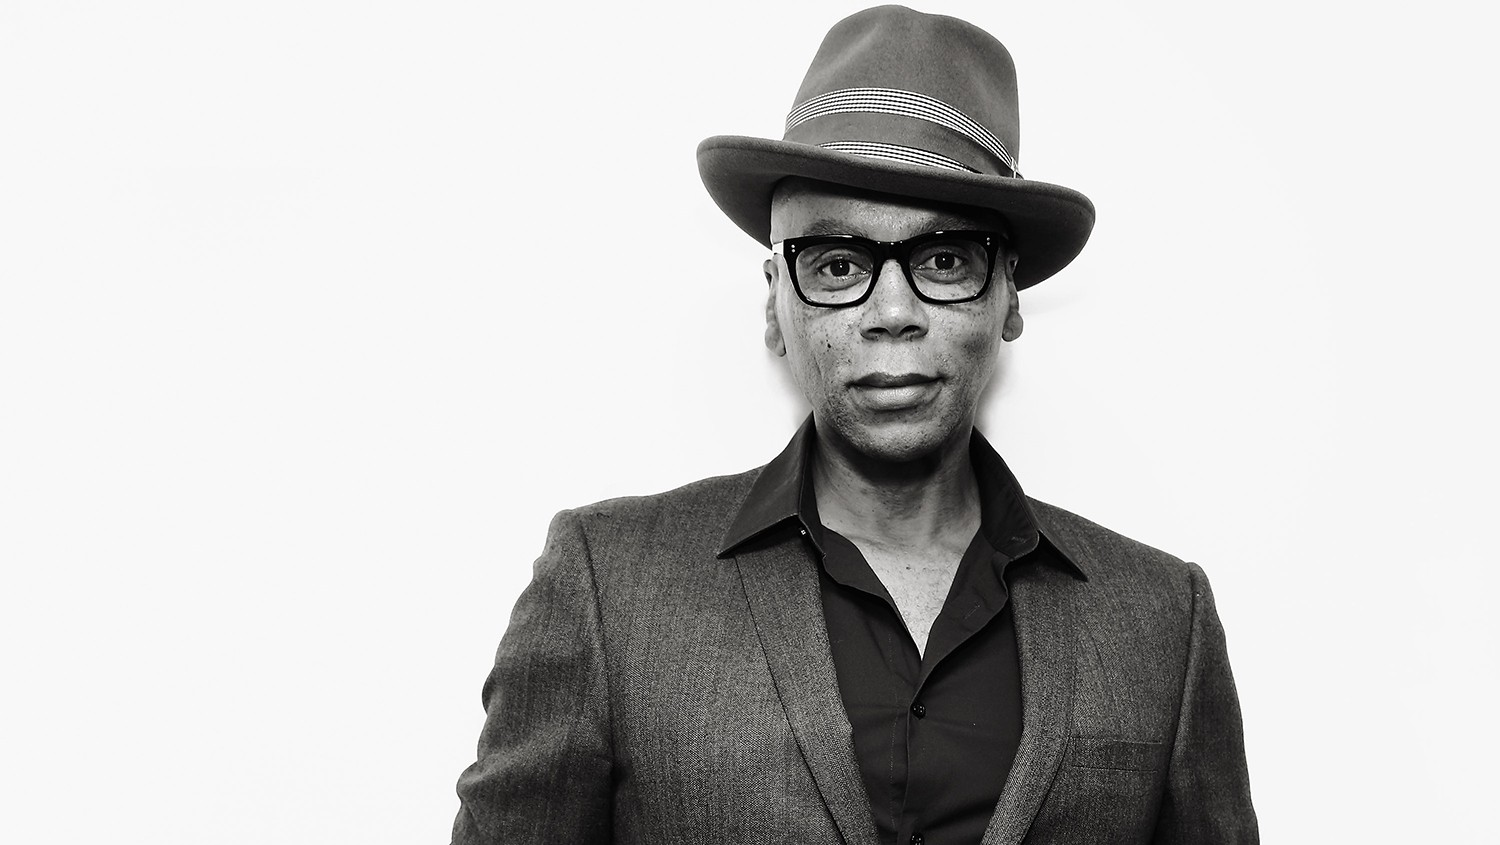 RuPaul photographed on March 20, 2015 in New York City.